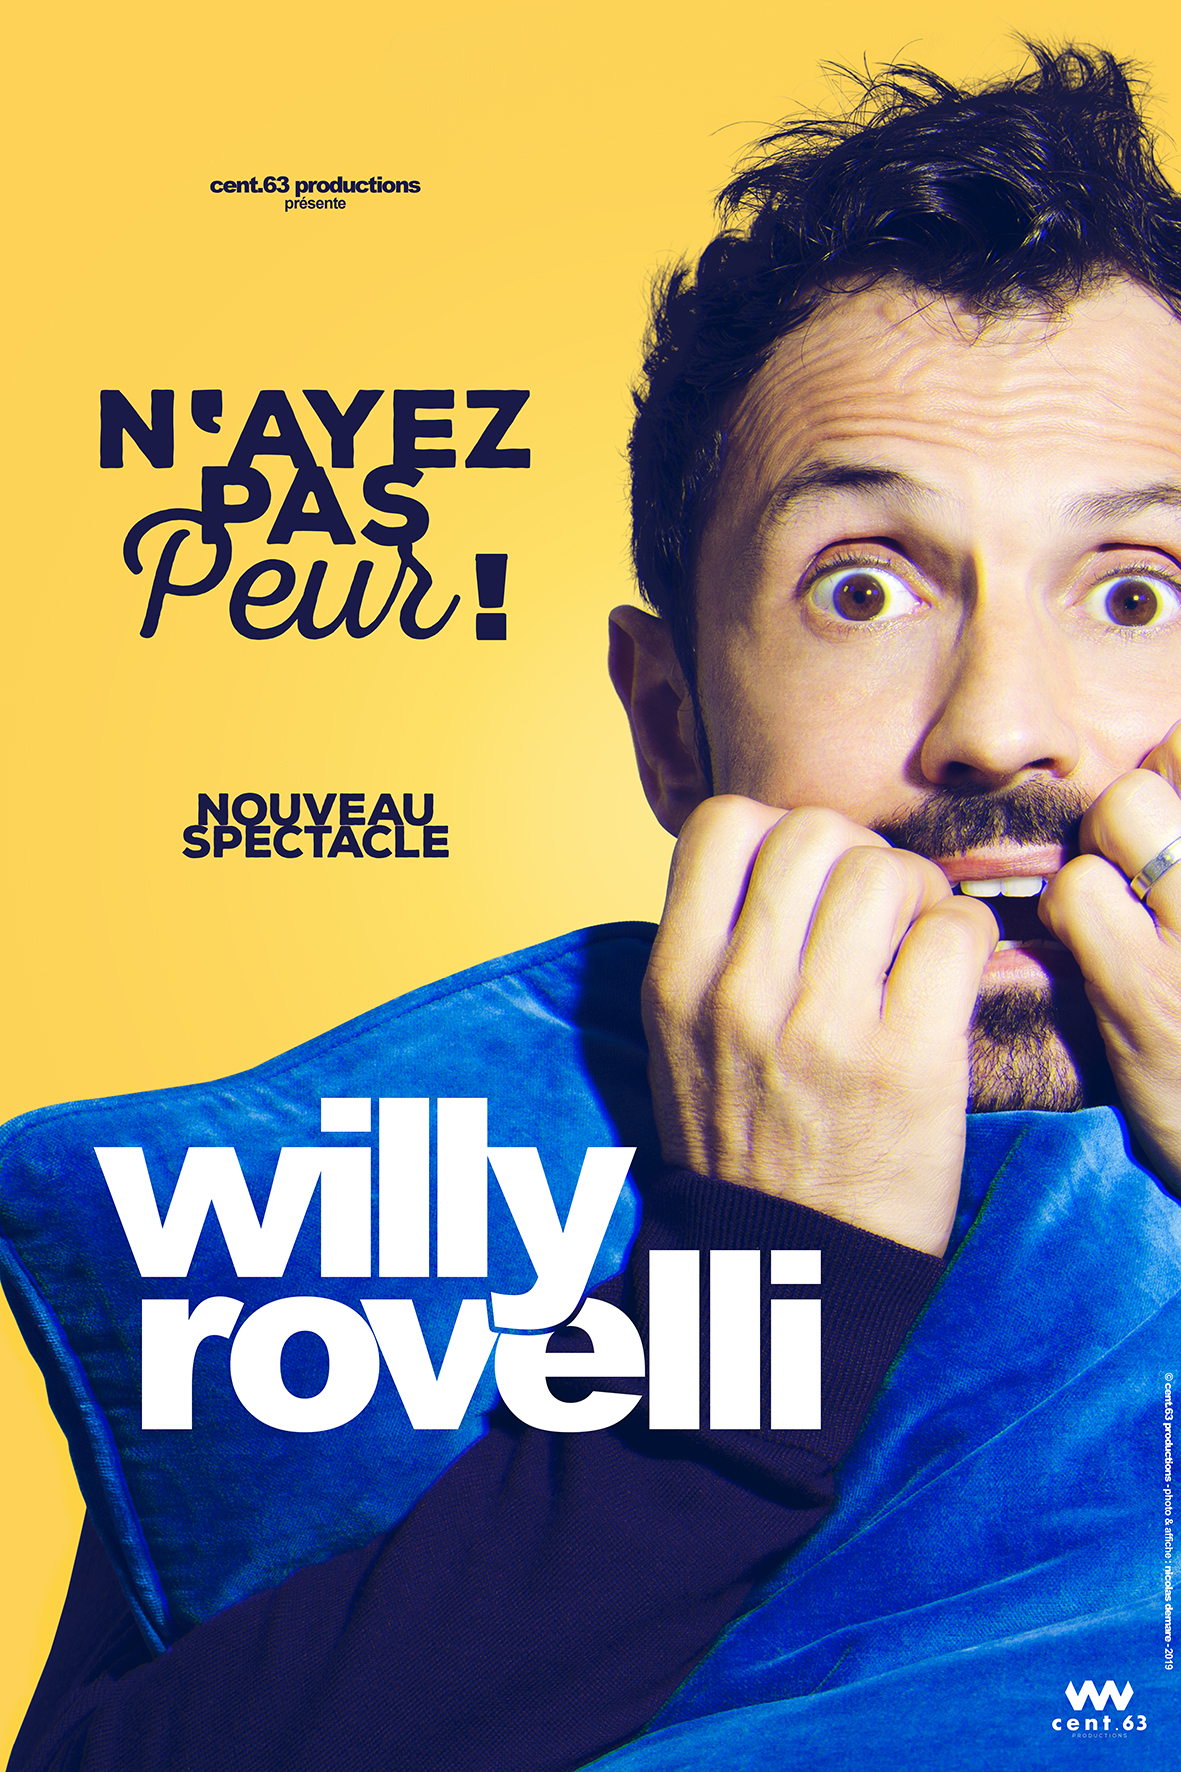 22 - 20 02 07 willy rovelli